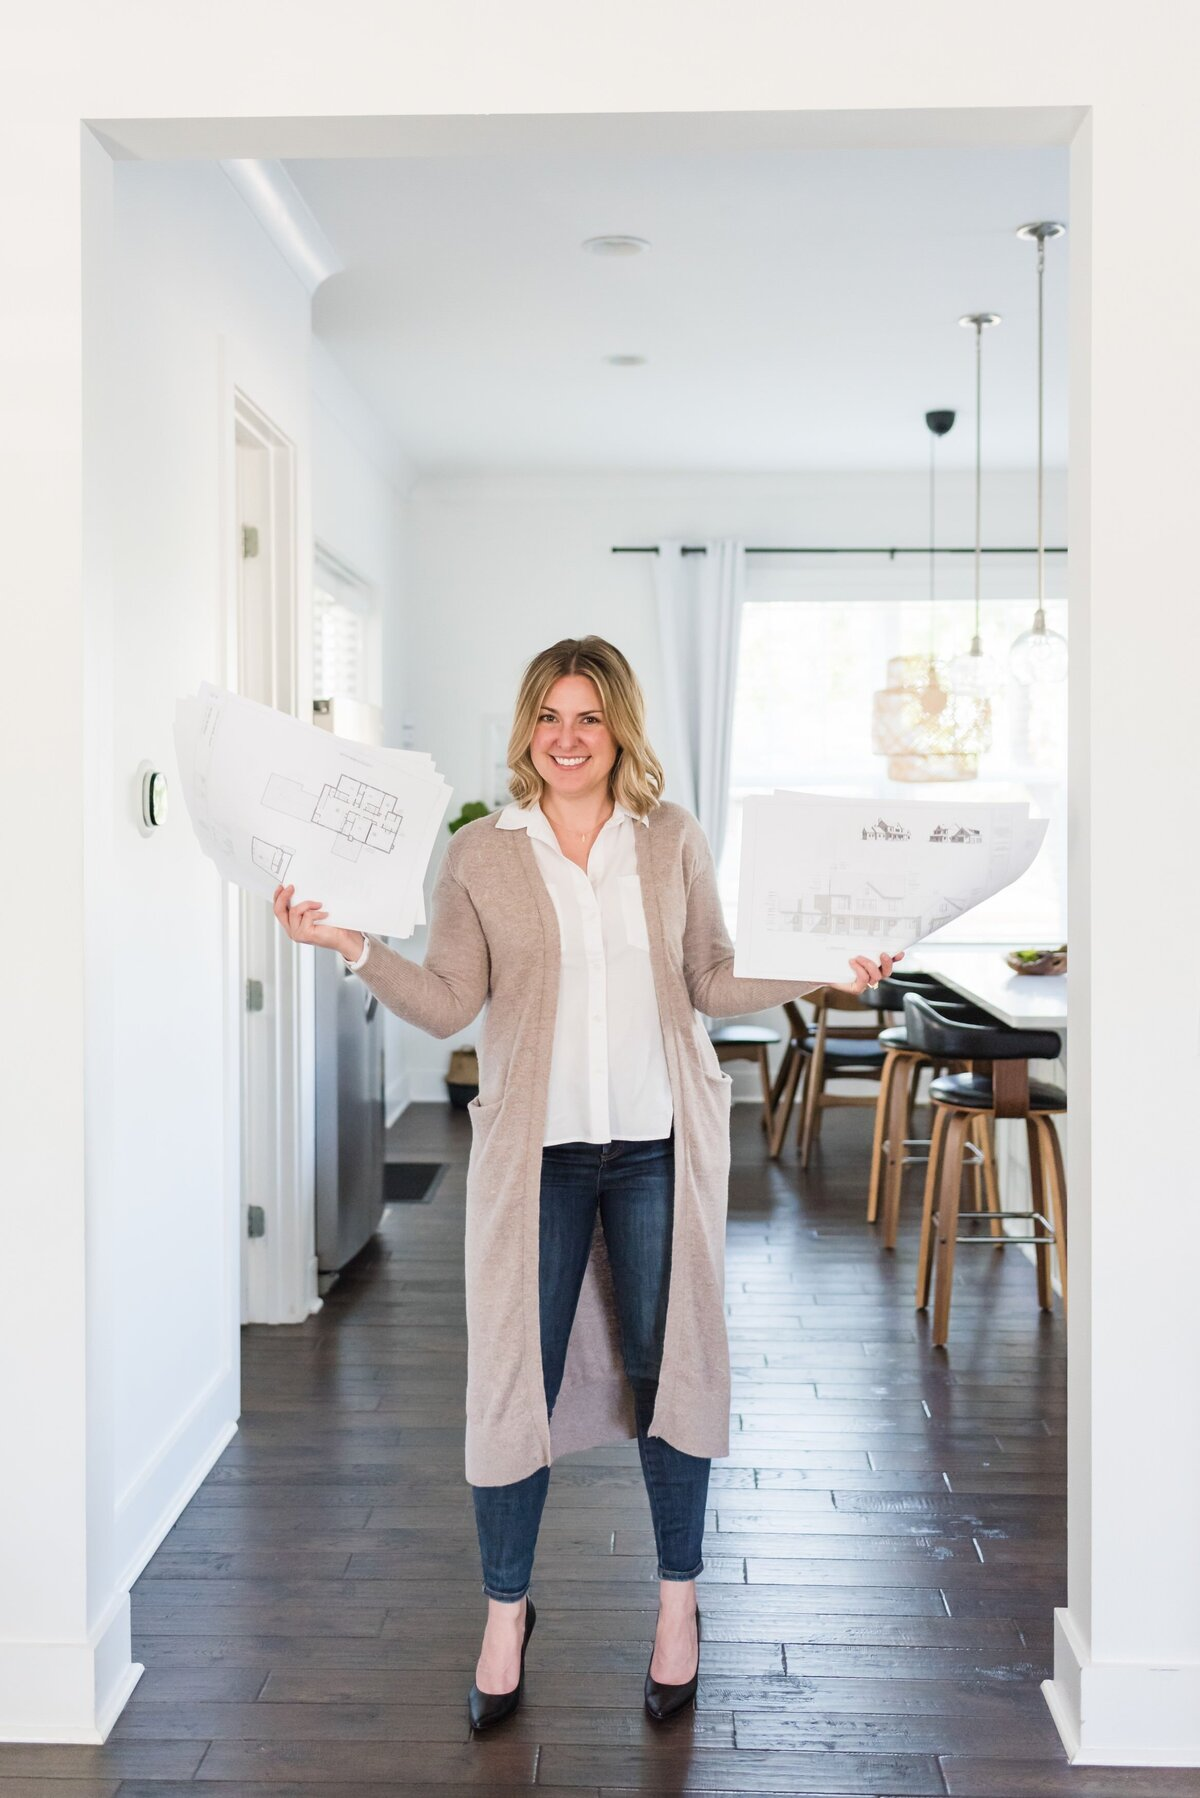 Nashville realtor and architect standing in doorframe with building plans in her hands for a headshot